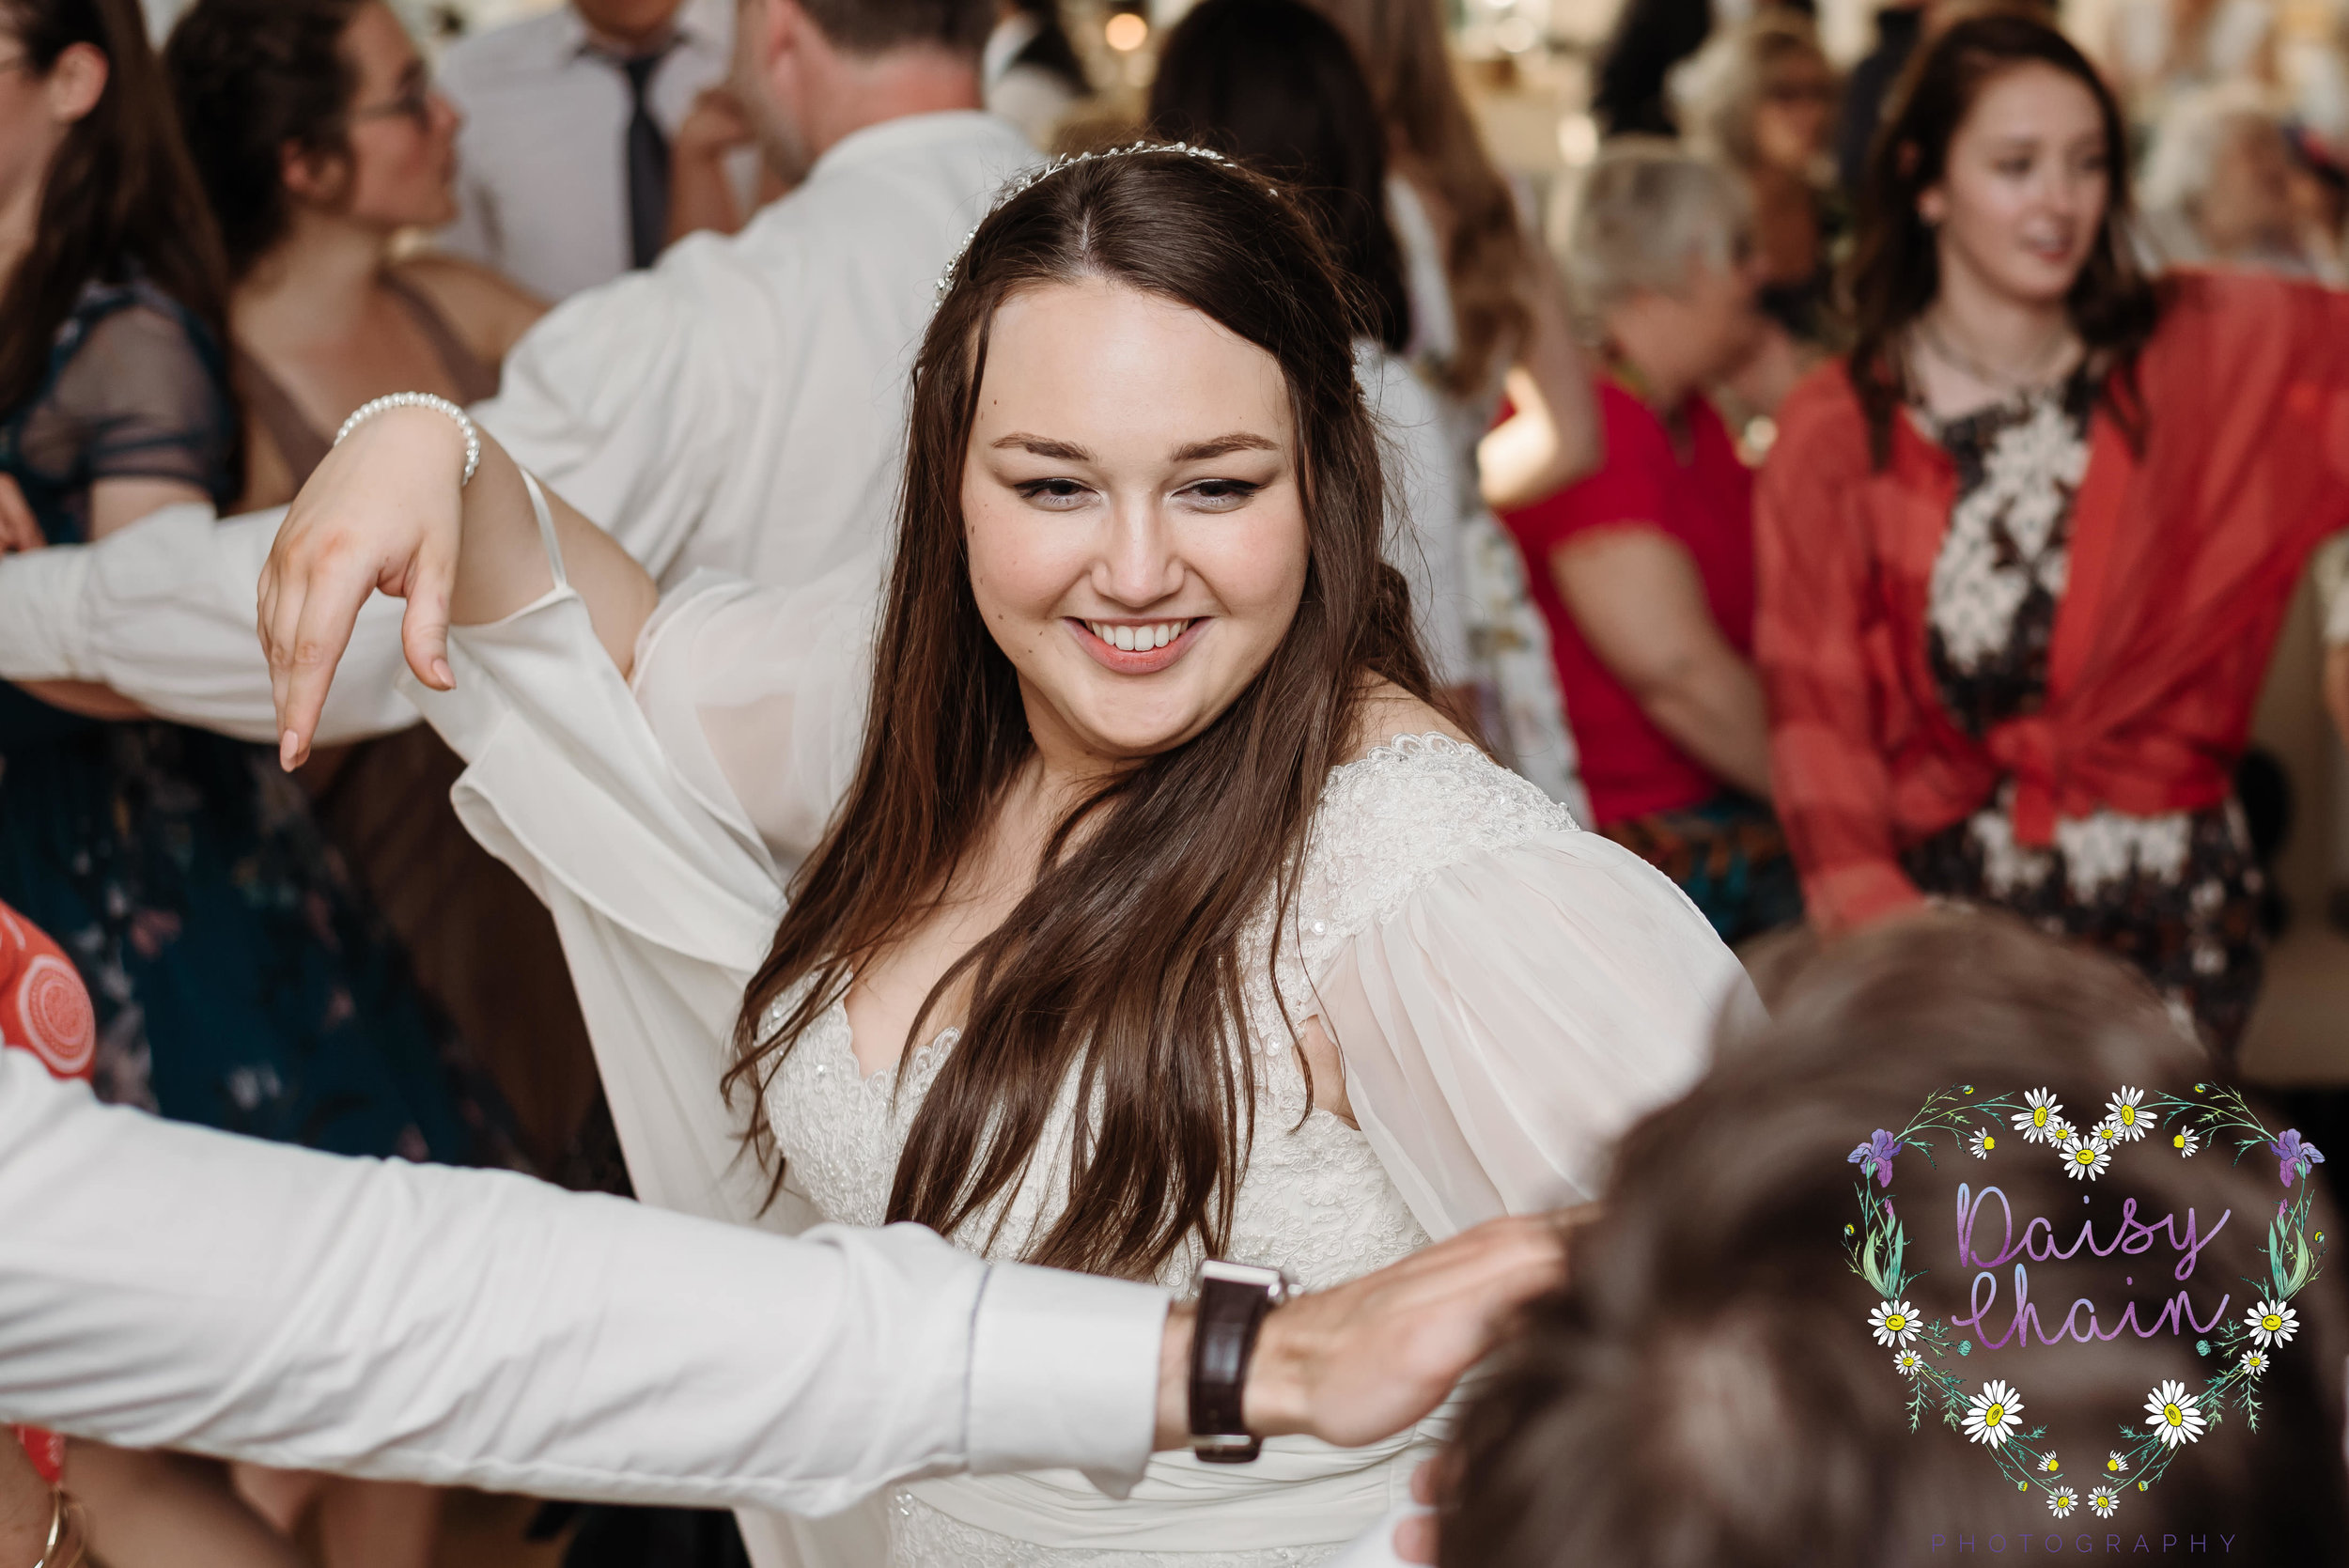 Bride - Ceilidh dancing